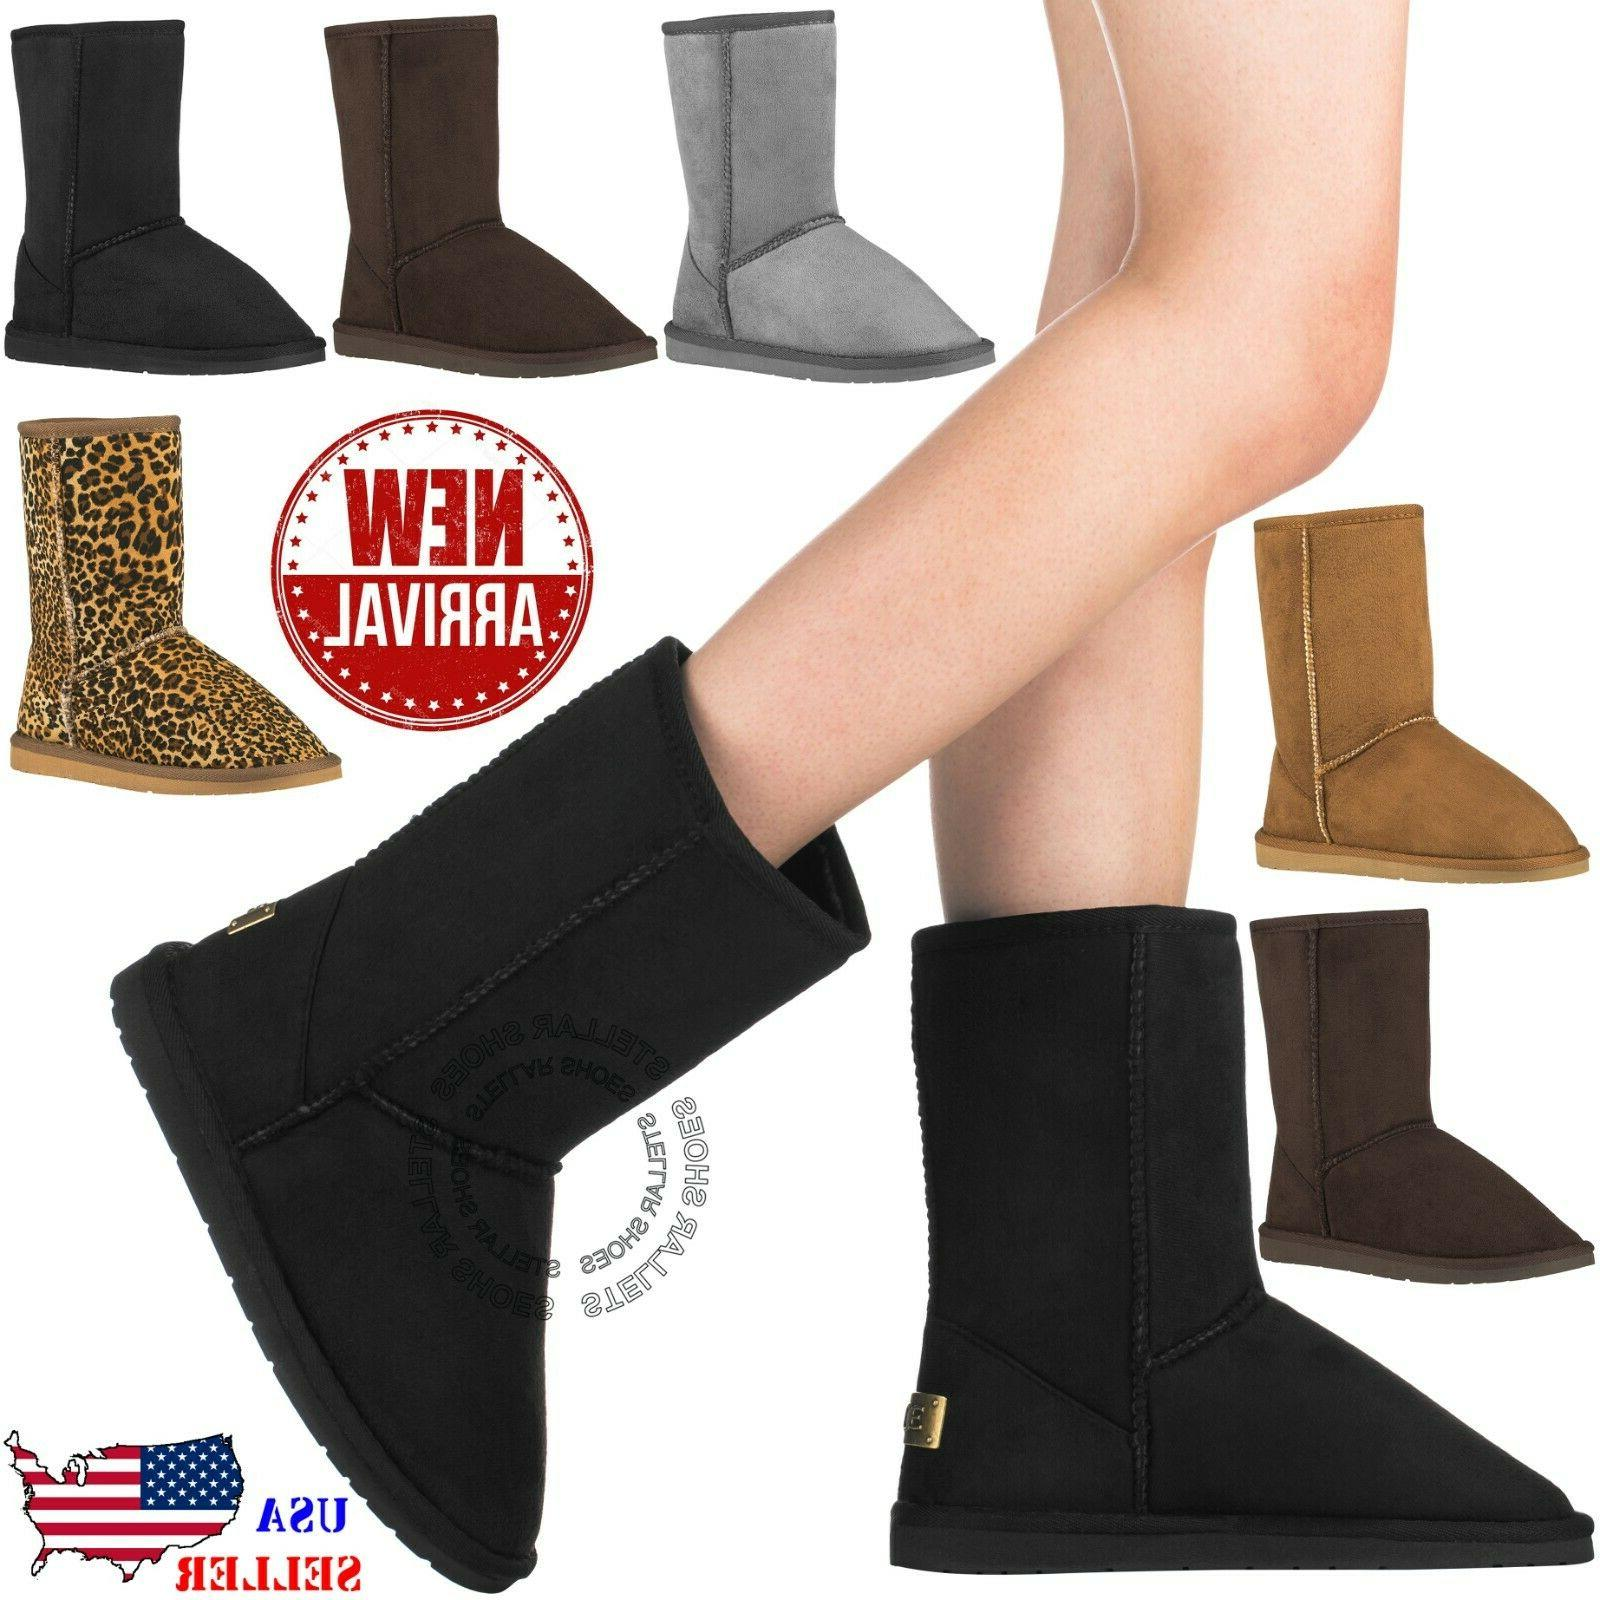 new womens winter snow boots vegan leather